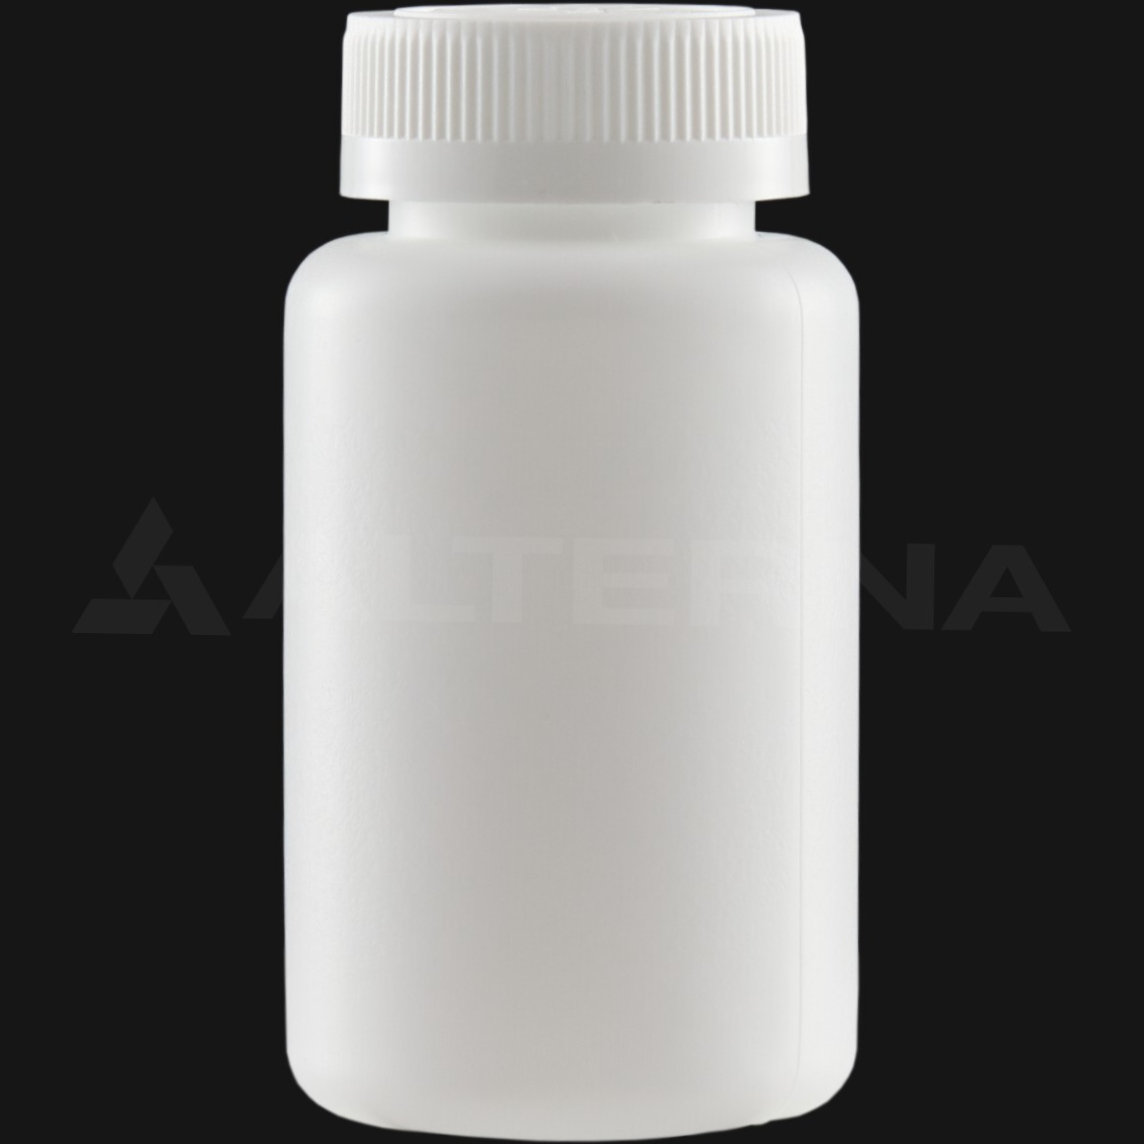 150 ml HDPE Pill Bottle with 38 mm Child Resistant Cap